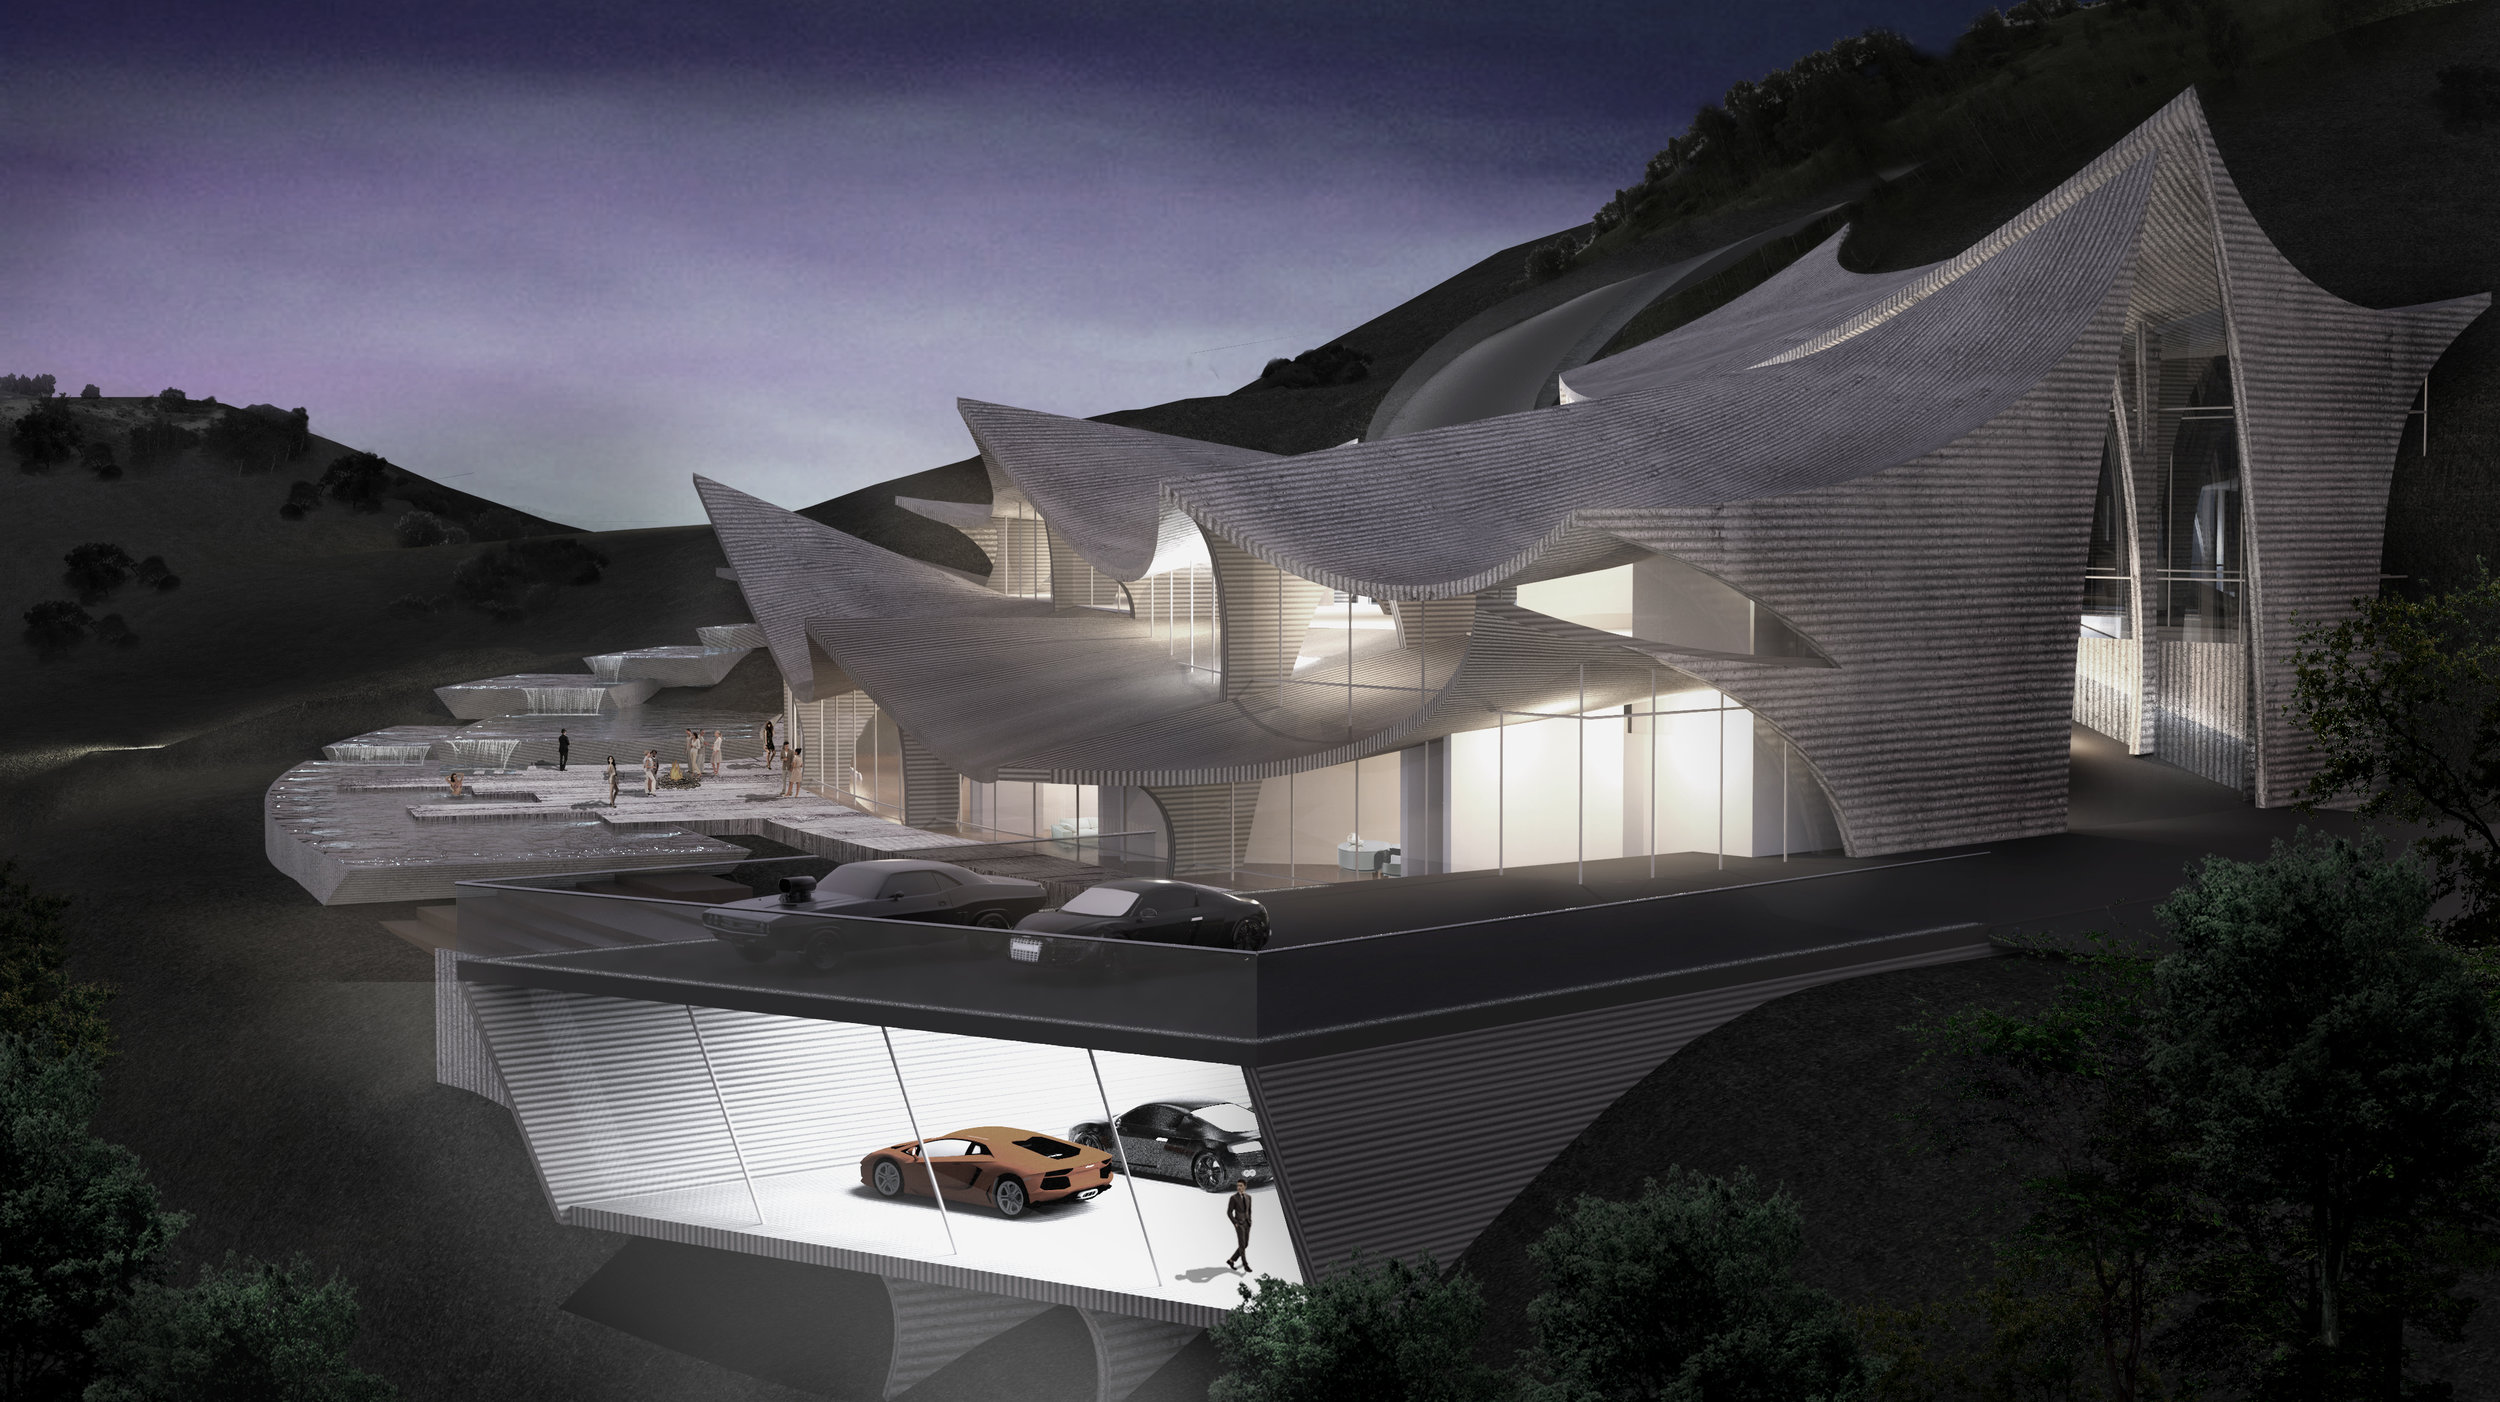 3d Printed Shoes >> The 3D Printed Home: From Inside, Out| Hive